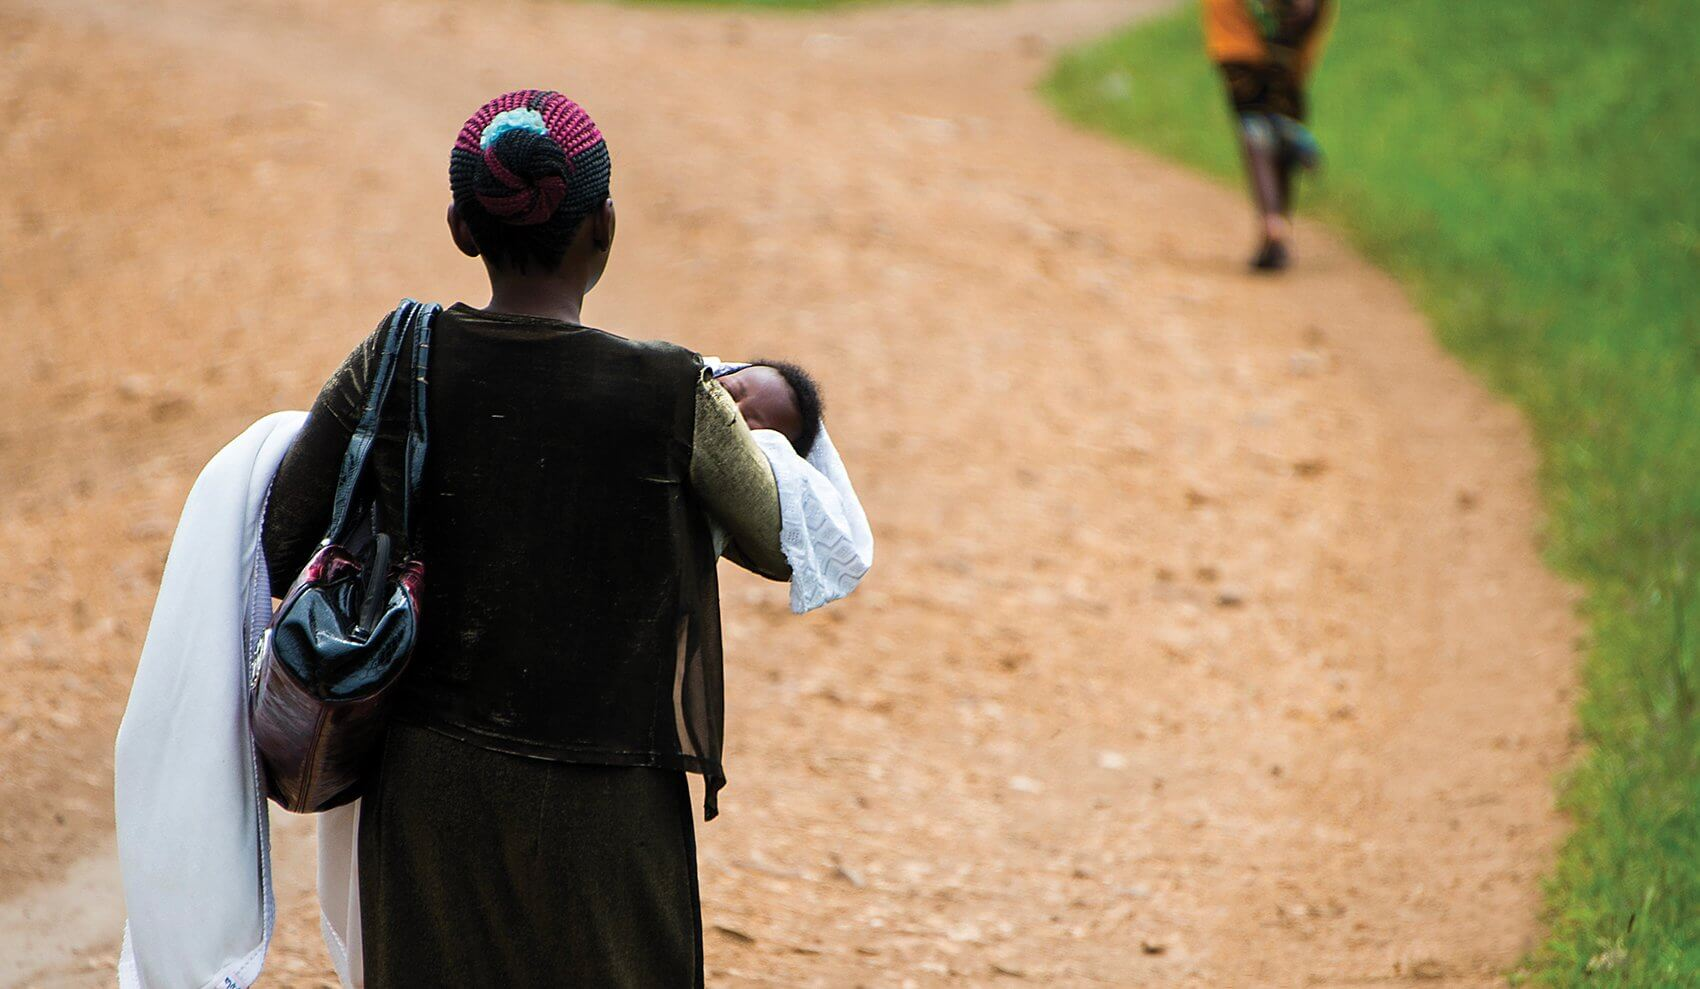 A mother carries her child to a checkup in Uganda. (Credit: Smiley Pool)